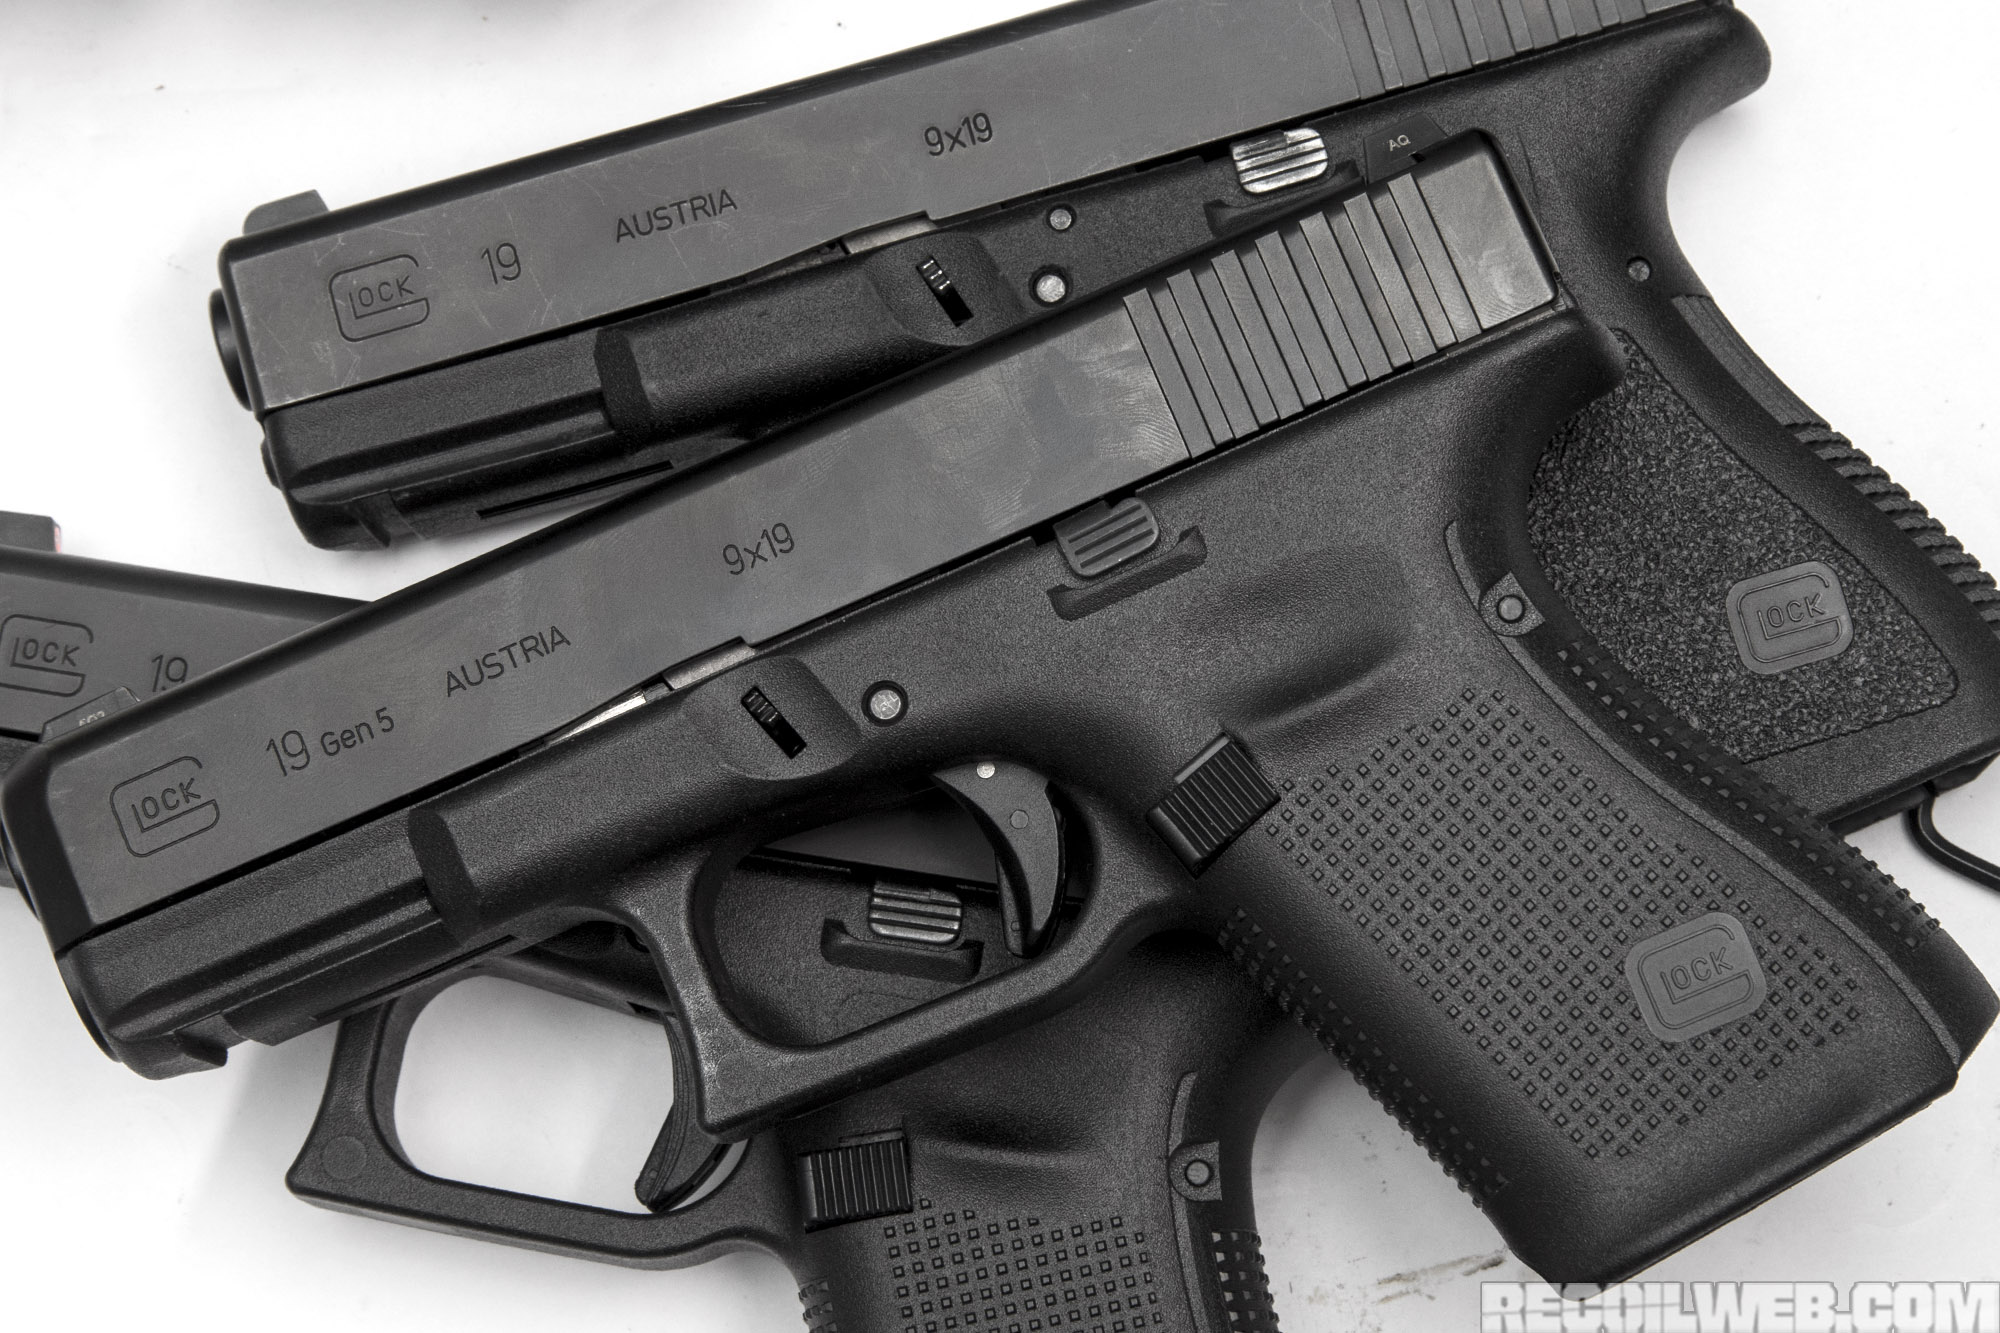 Here S The Full Reveal Of The New Glock Gen5 Pistol Recoil